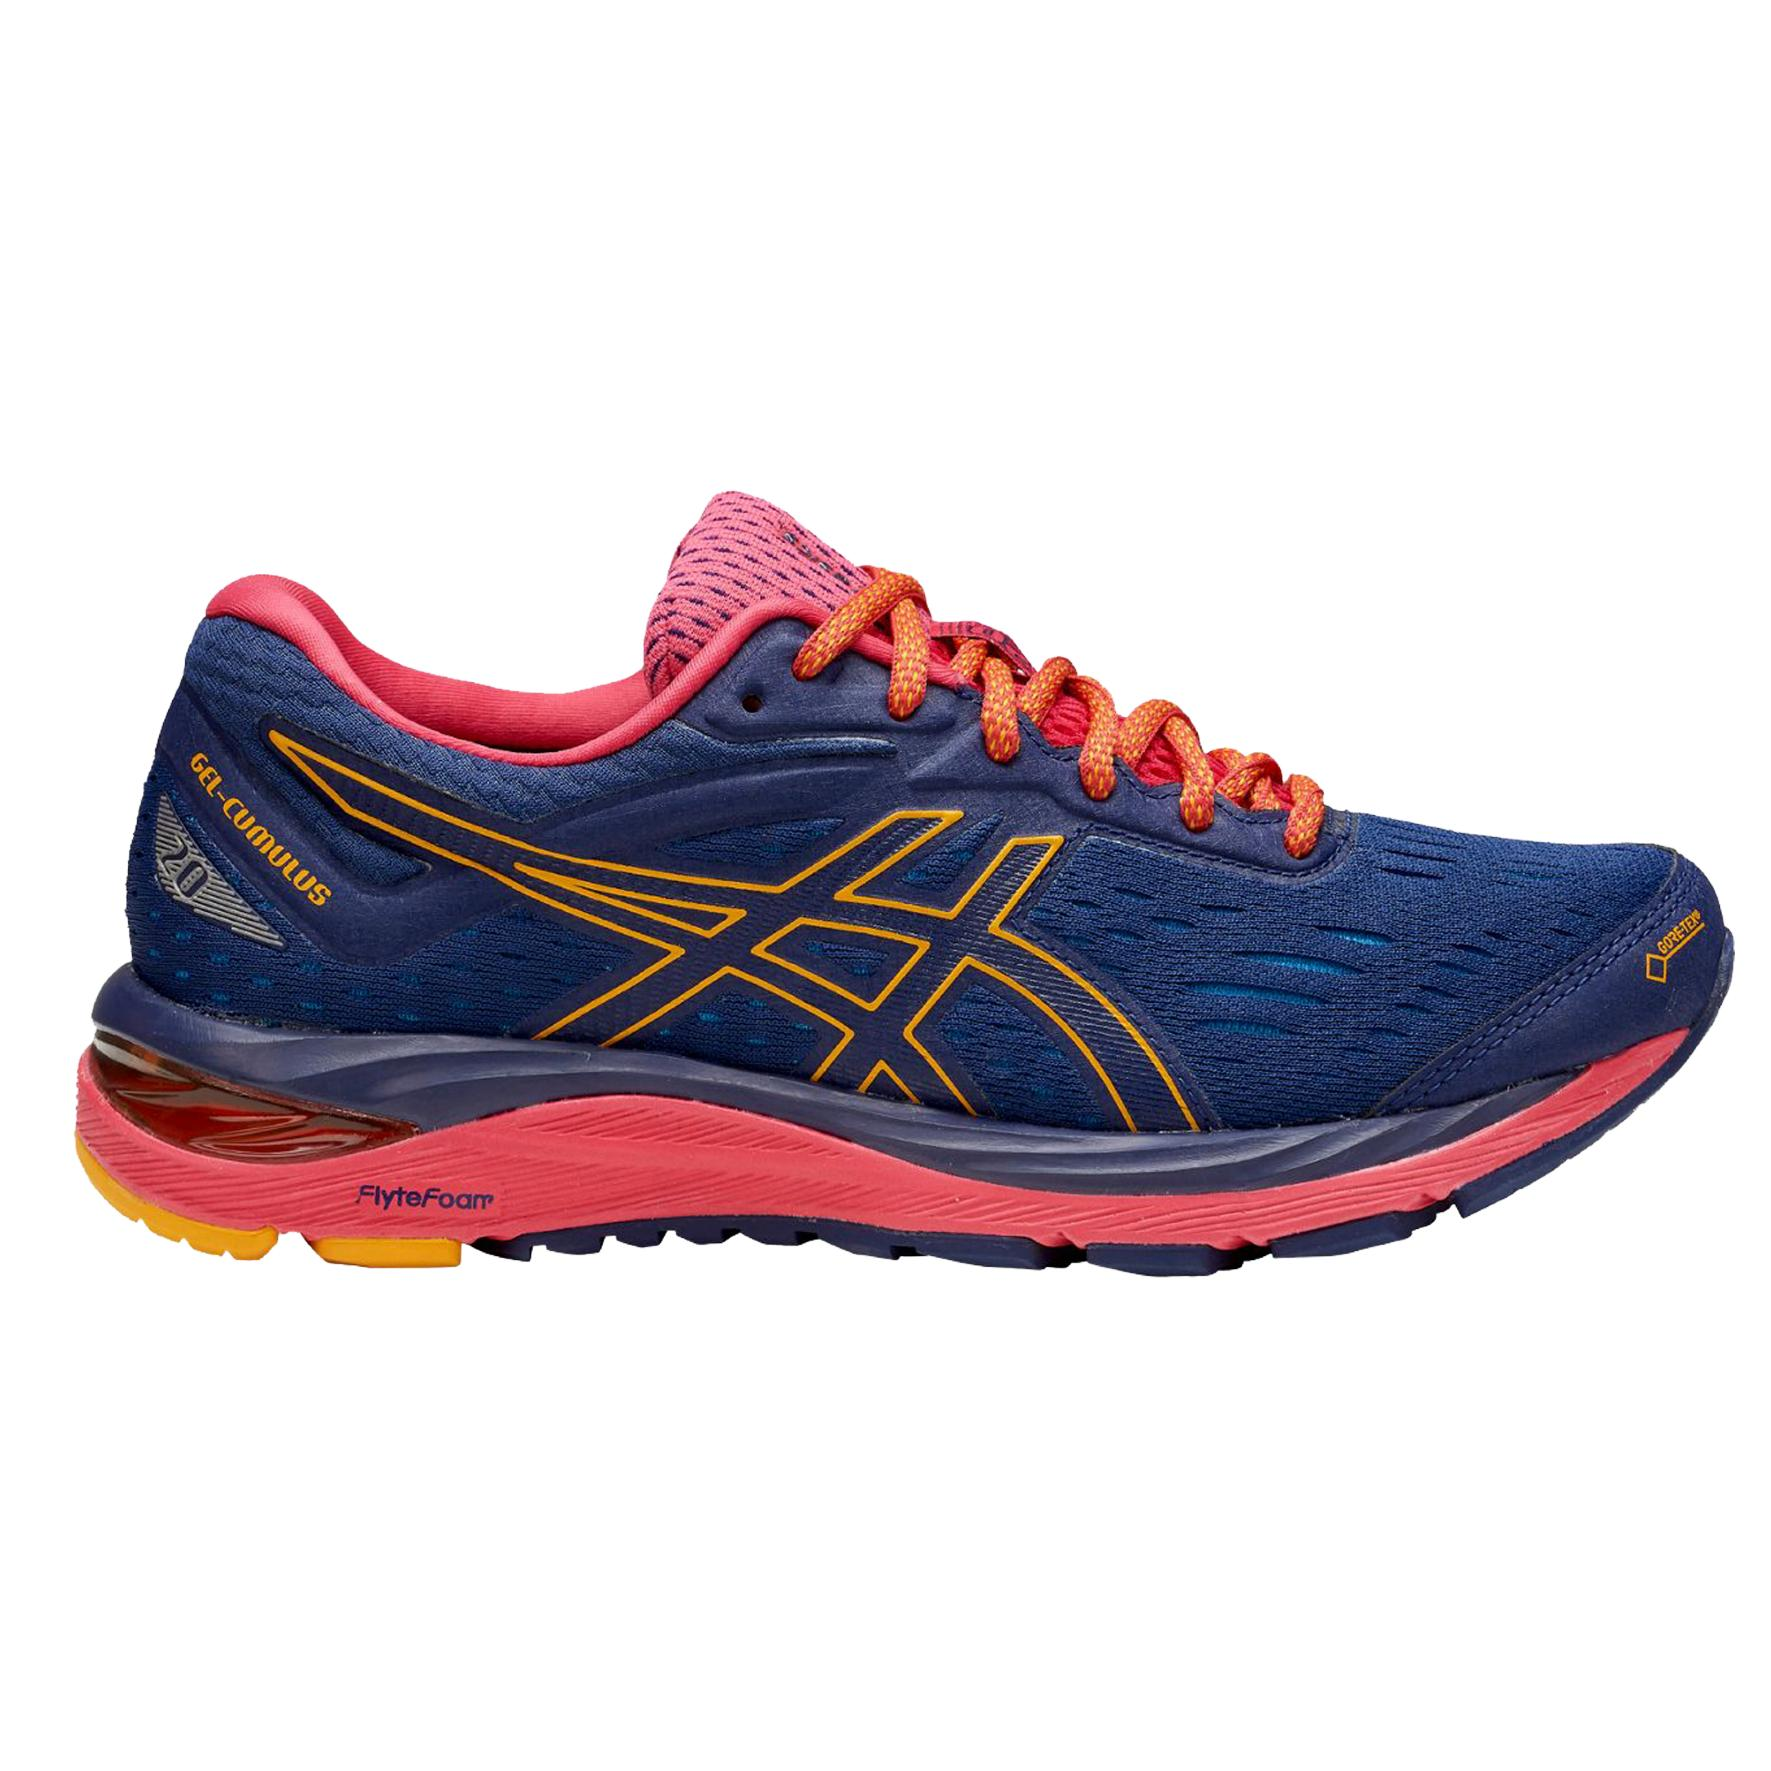 Asics Shoes Gel-cumulus 20 G-tx Woman Indigo Blue amber - Tifoshop.com 8cf25441645